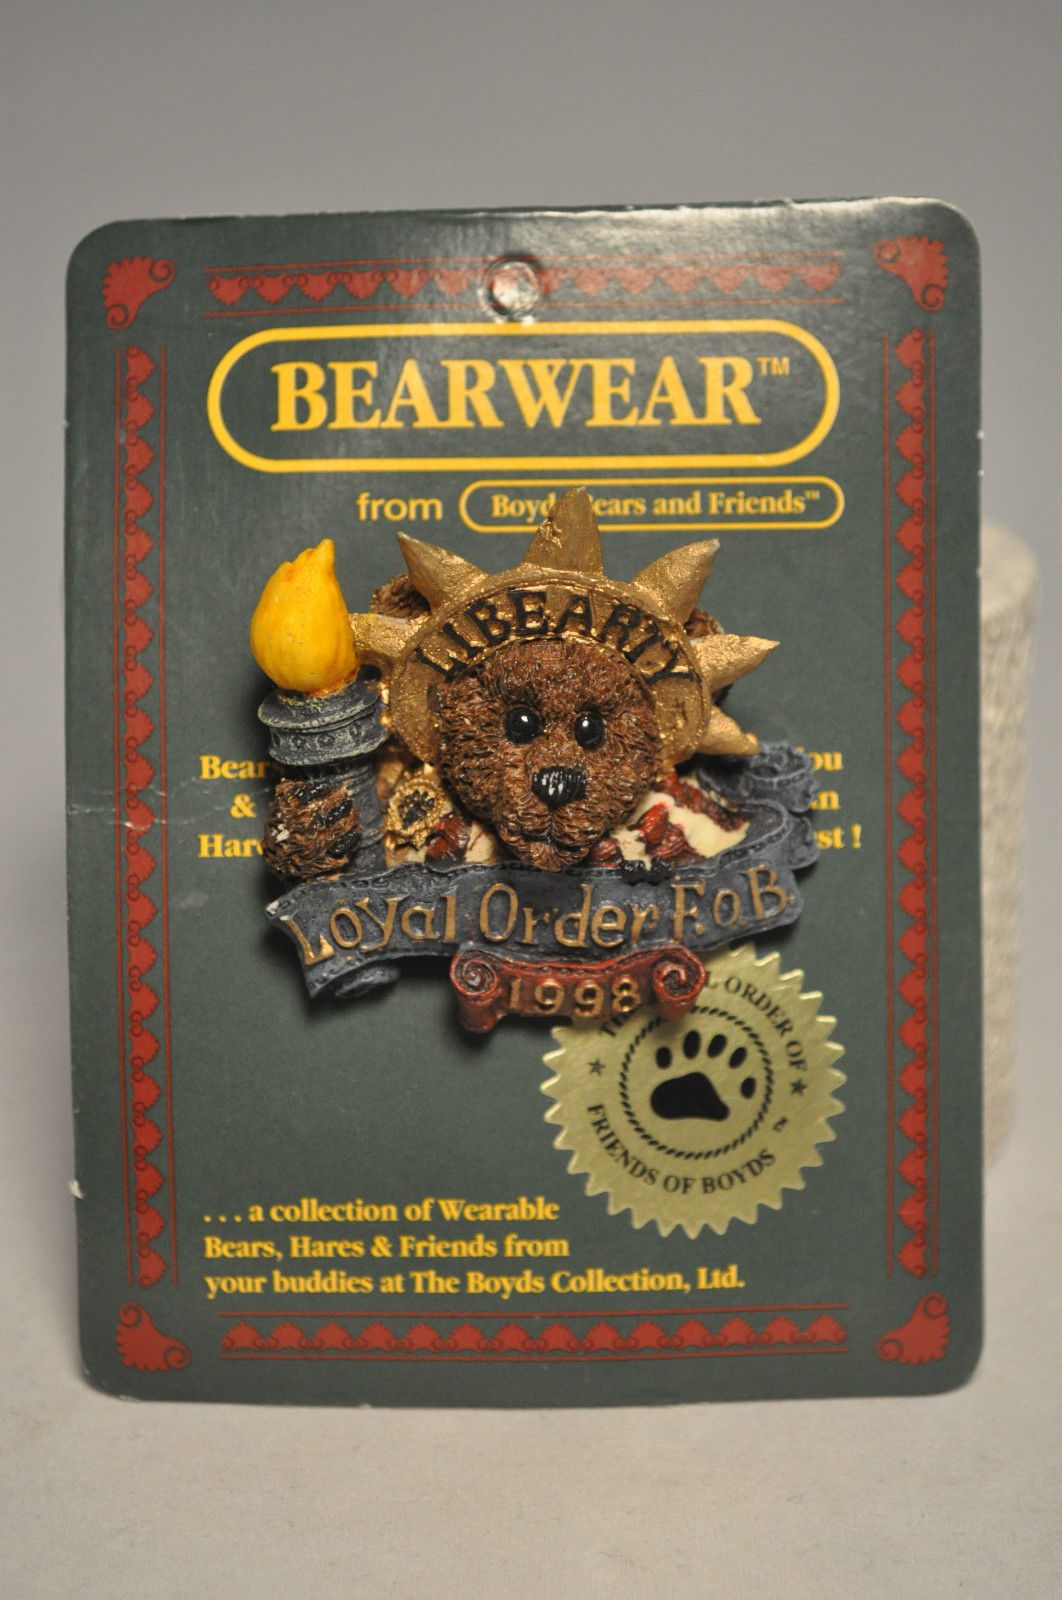 Boyds Bears & Friends: BEARWEAR - Ms Liberty - 01998-11, Brooch Pin